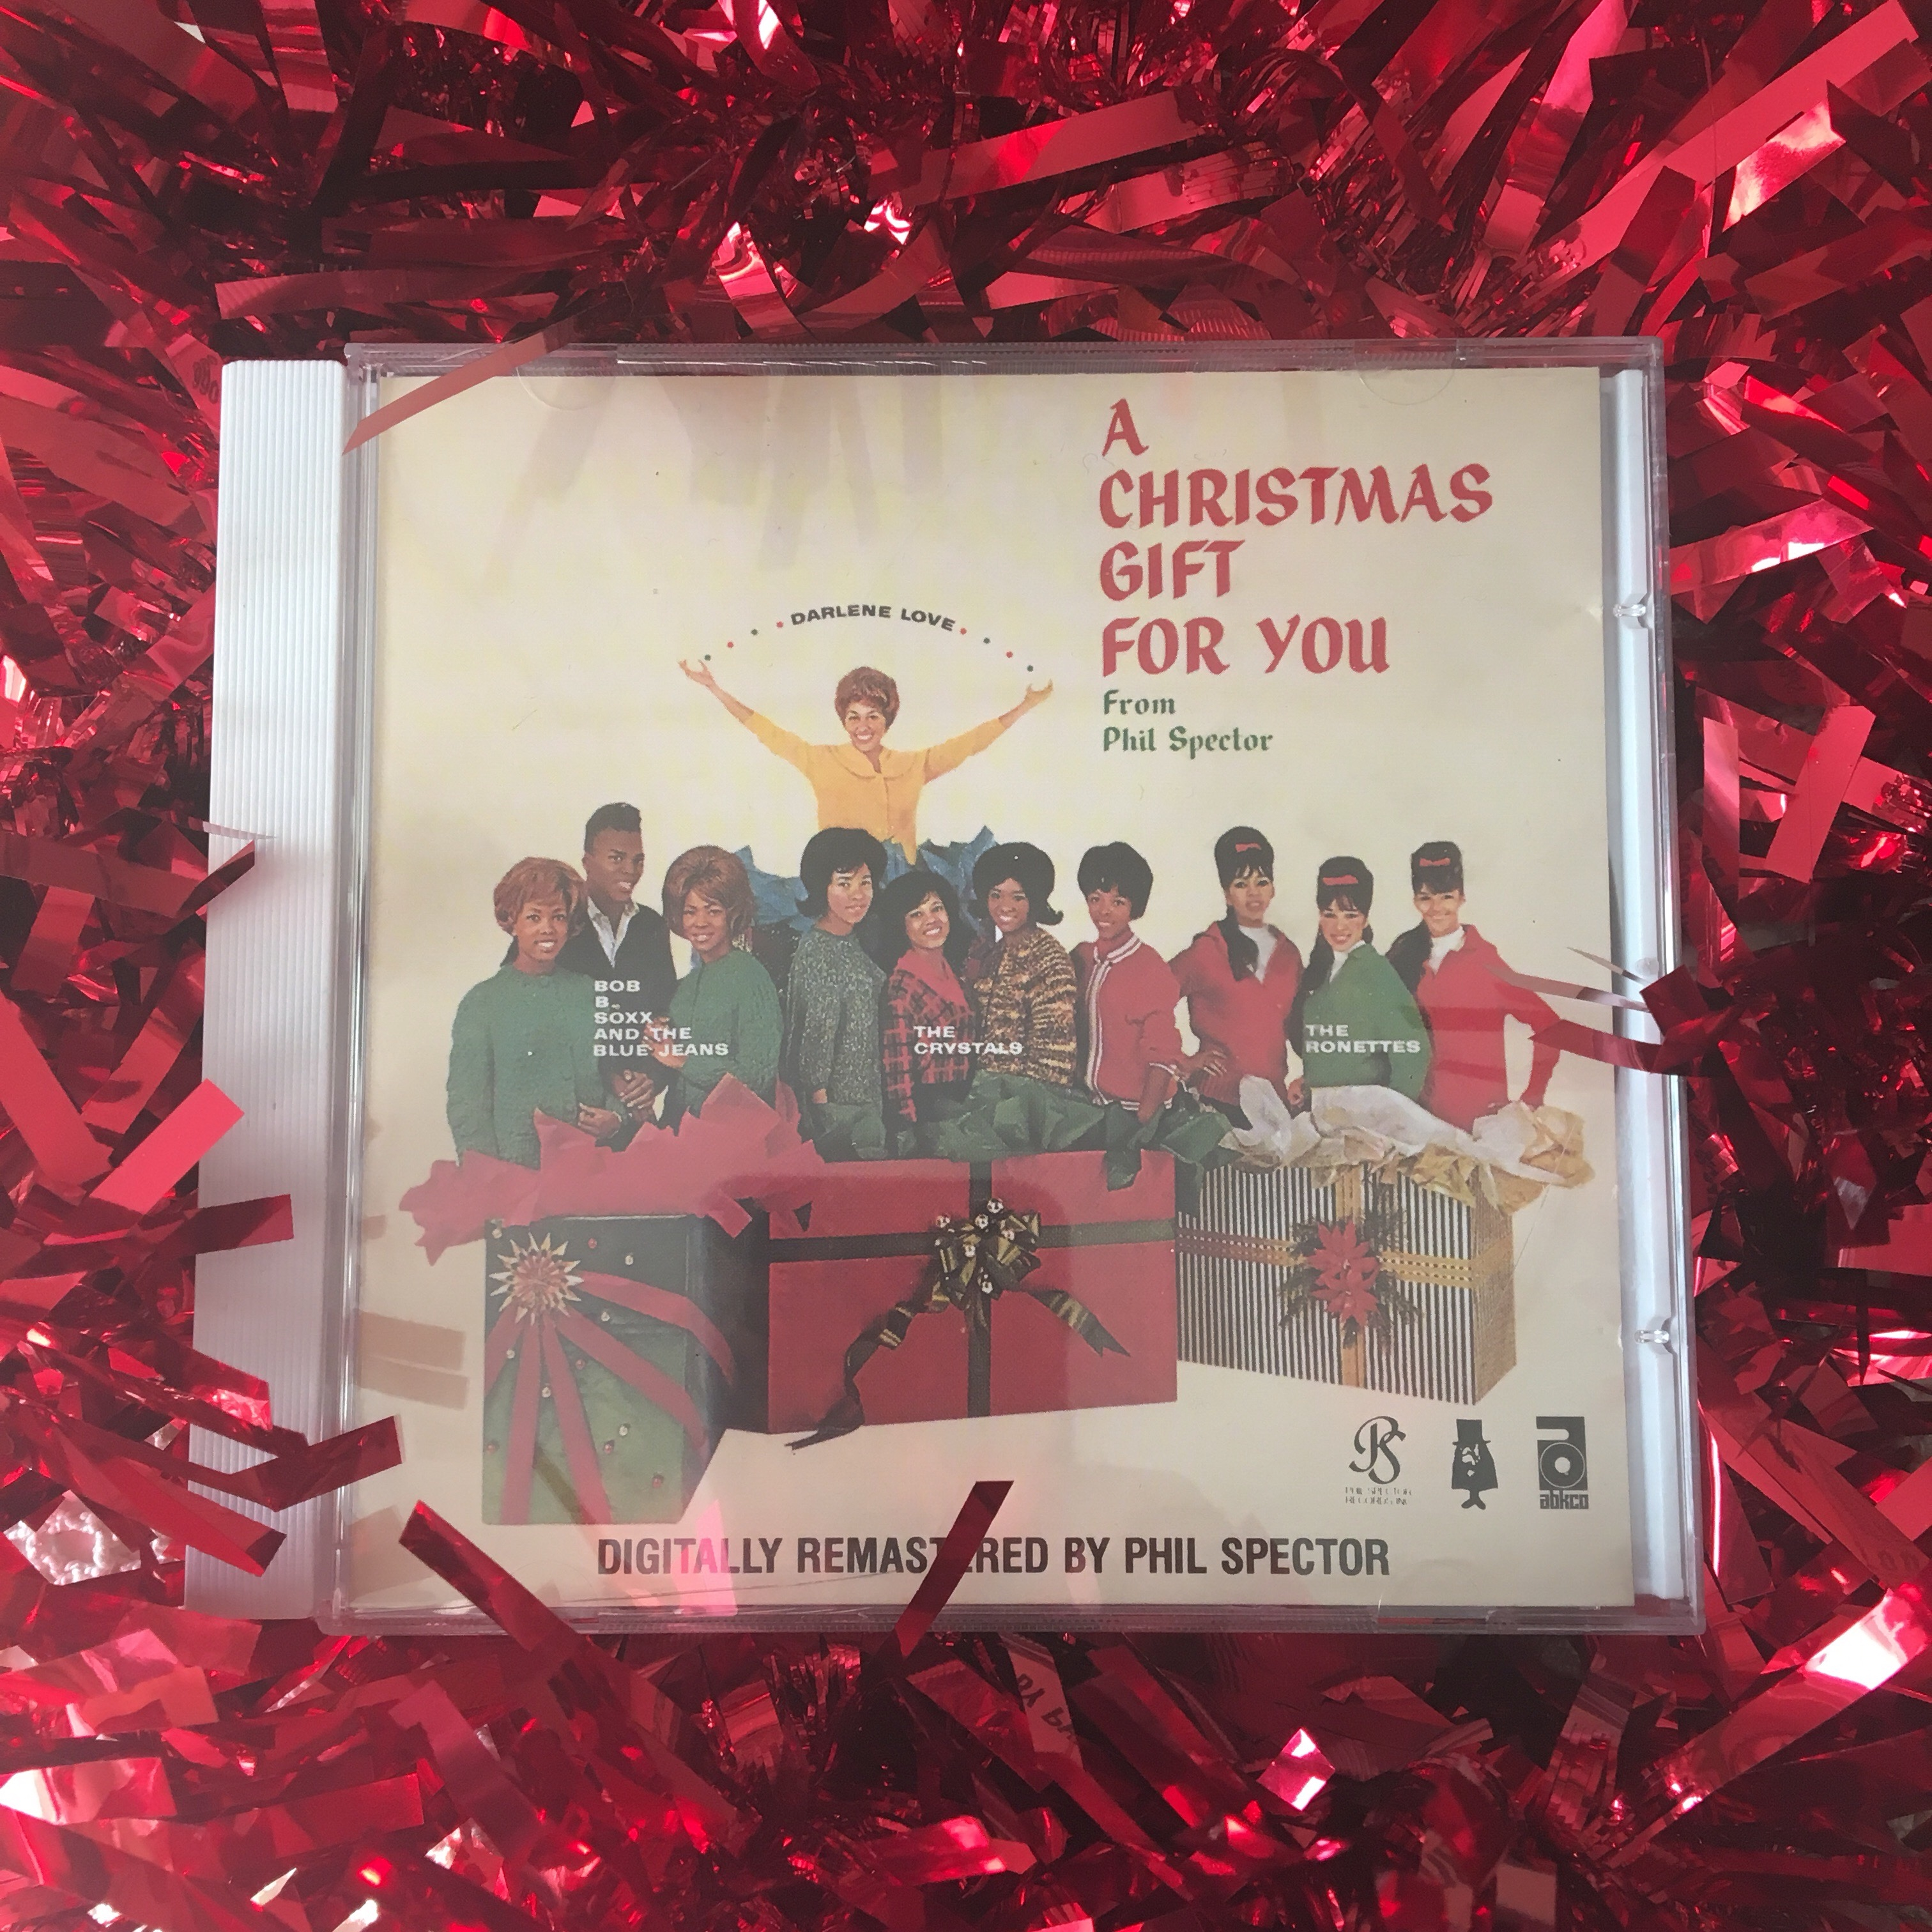 Stereo phil spector a christmas gift to you